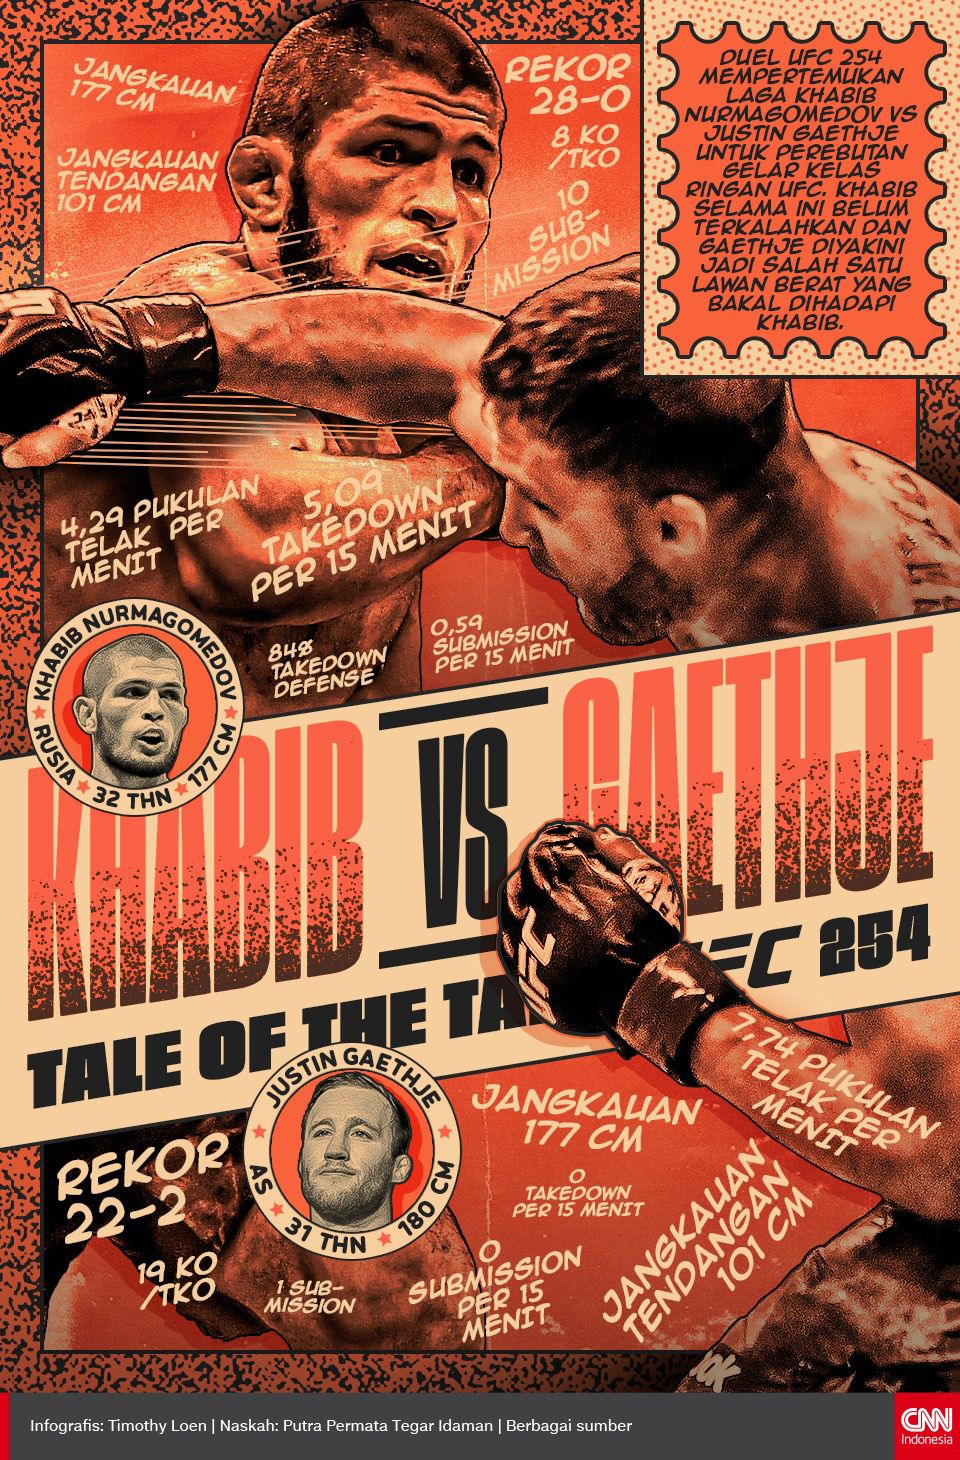 Infografis Tale of the Tape UFC 254 Khabib vs Gaethje